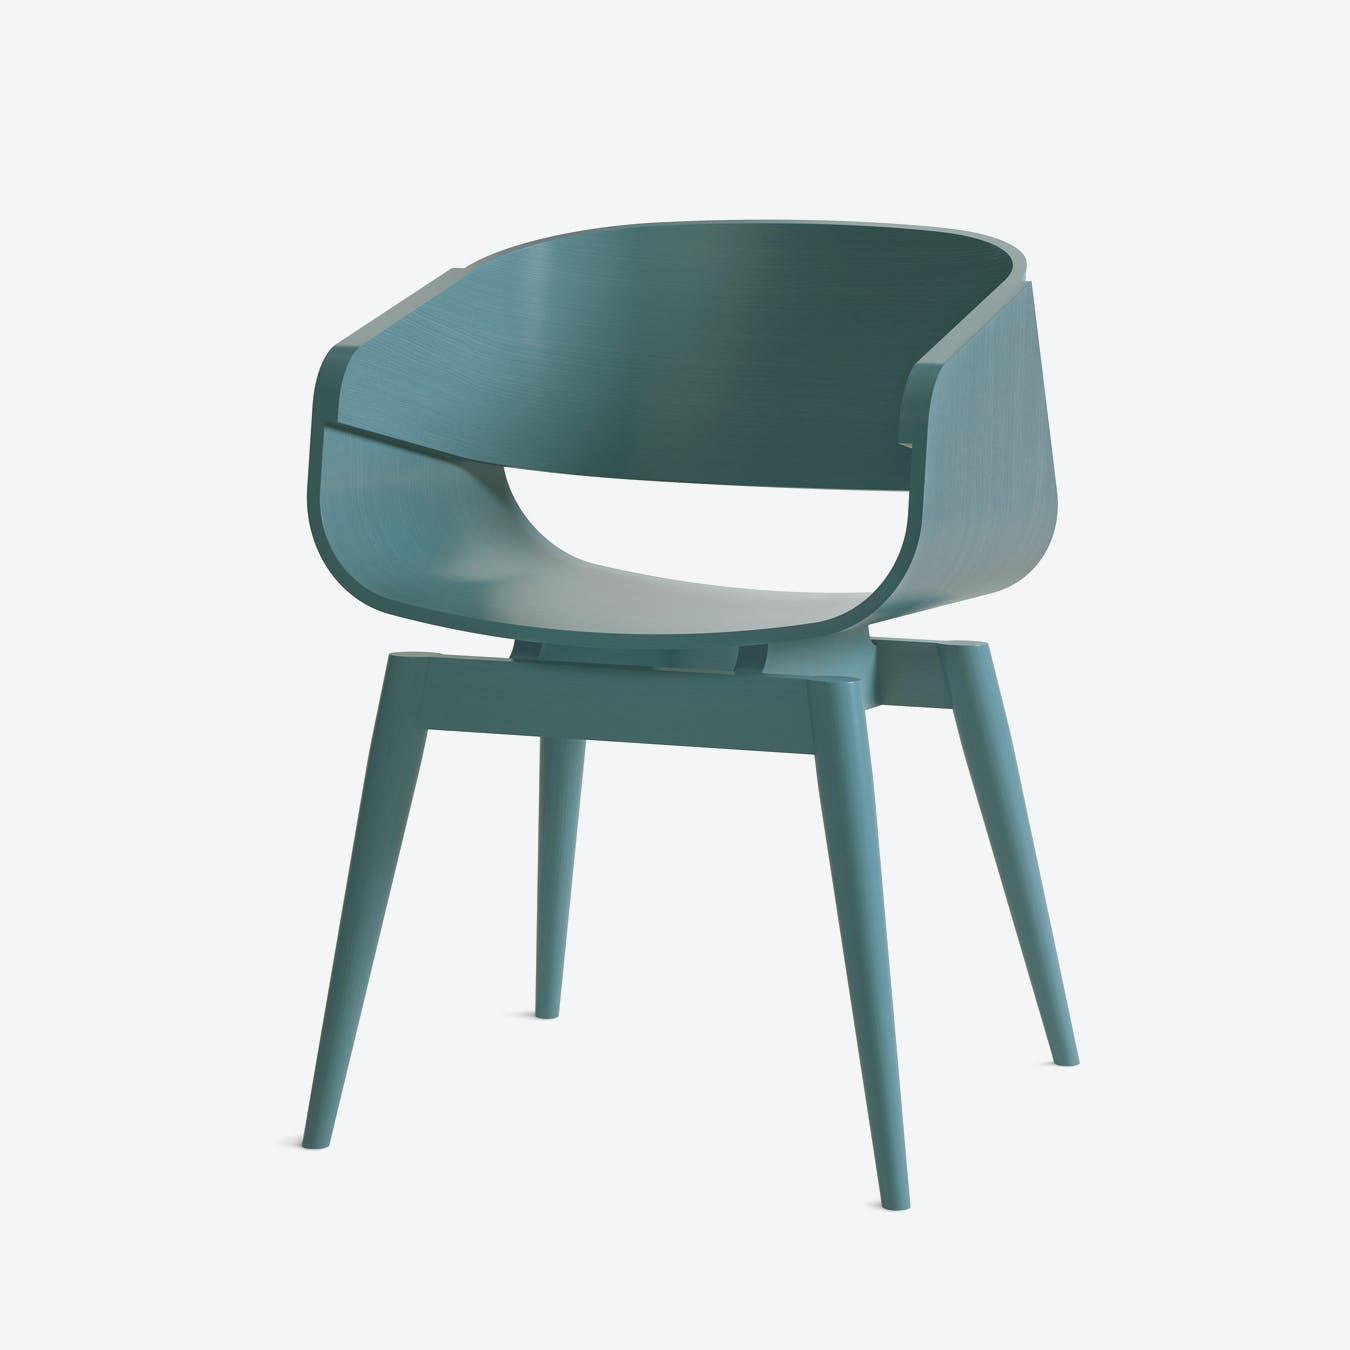 4th Armchair in Blue